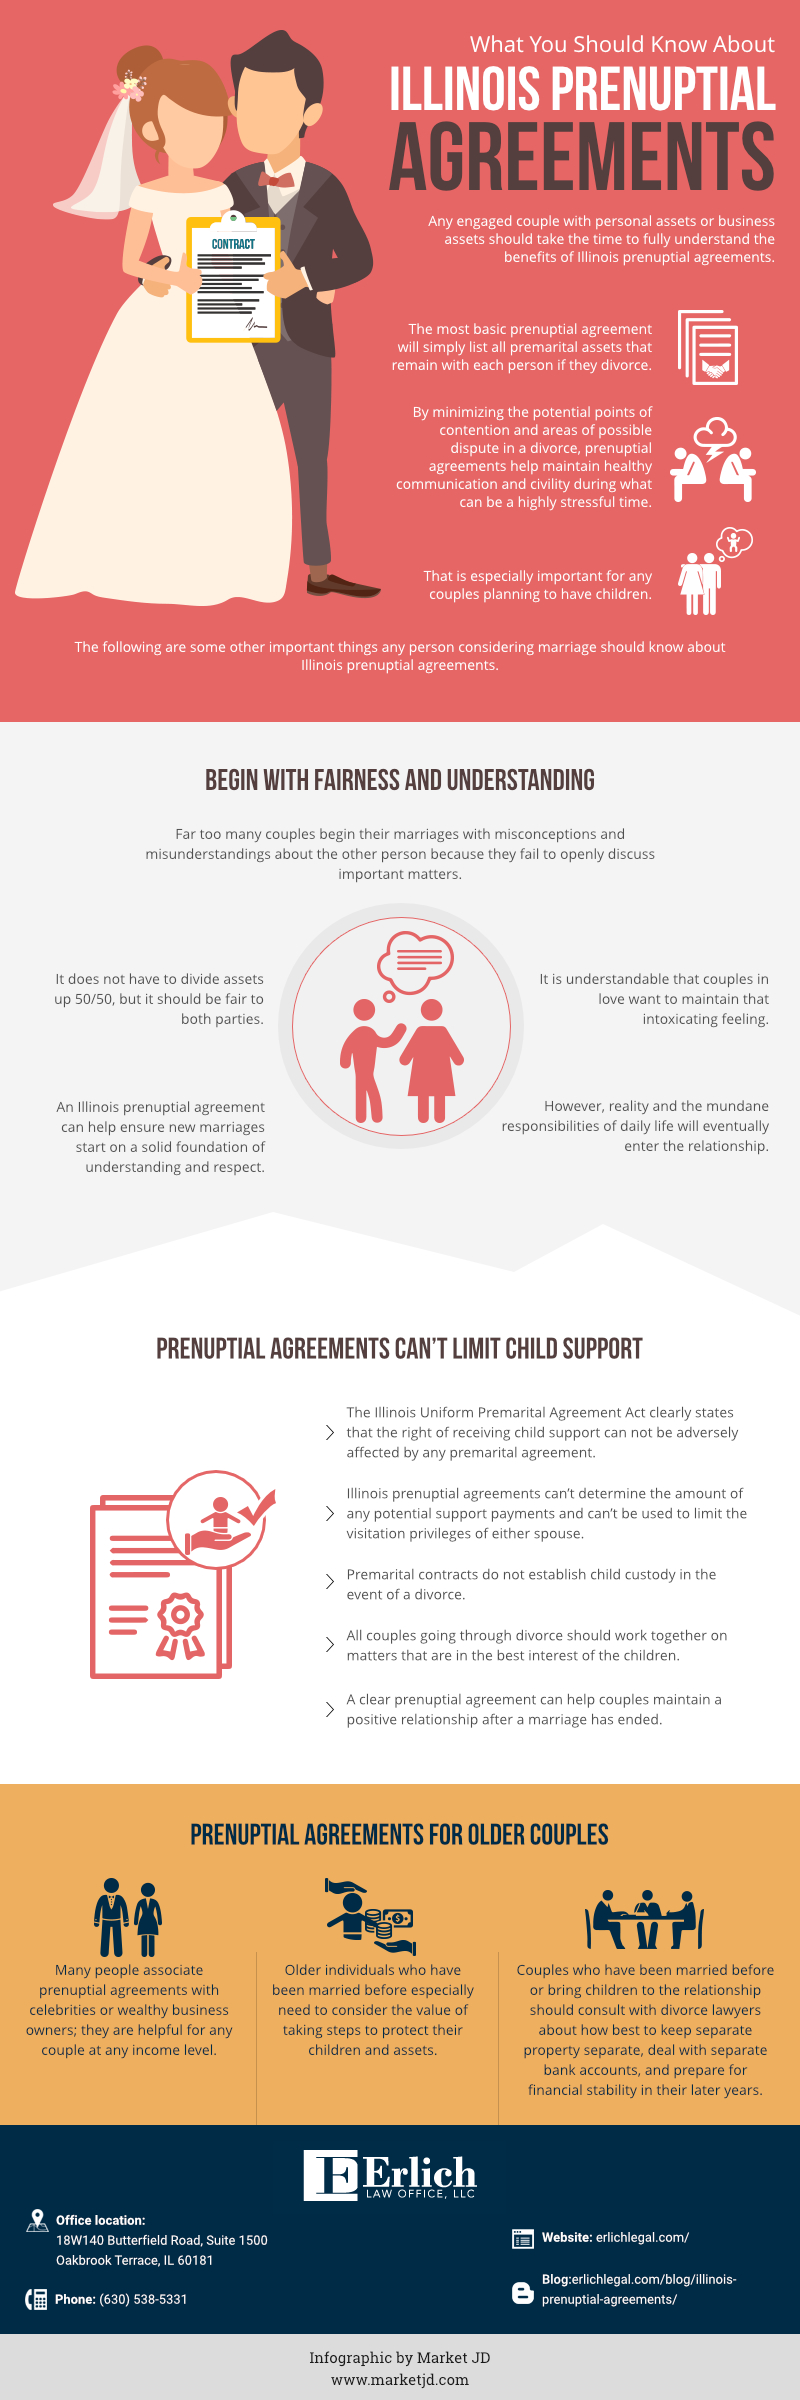 infographic_Illinois Prenuptial Agreements